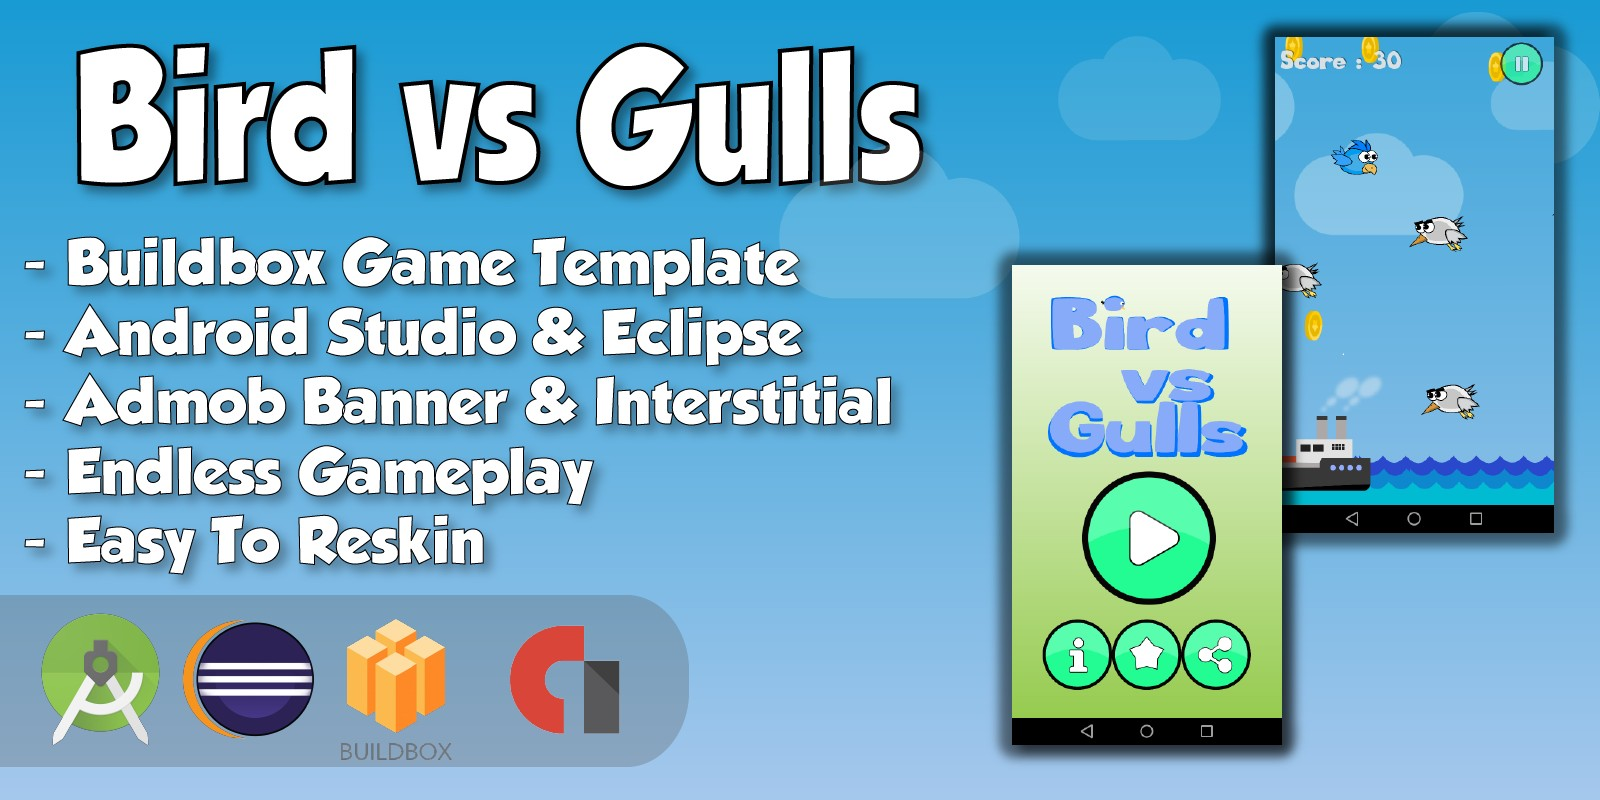 Bird vs Gulls - Buildbox Game Template